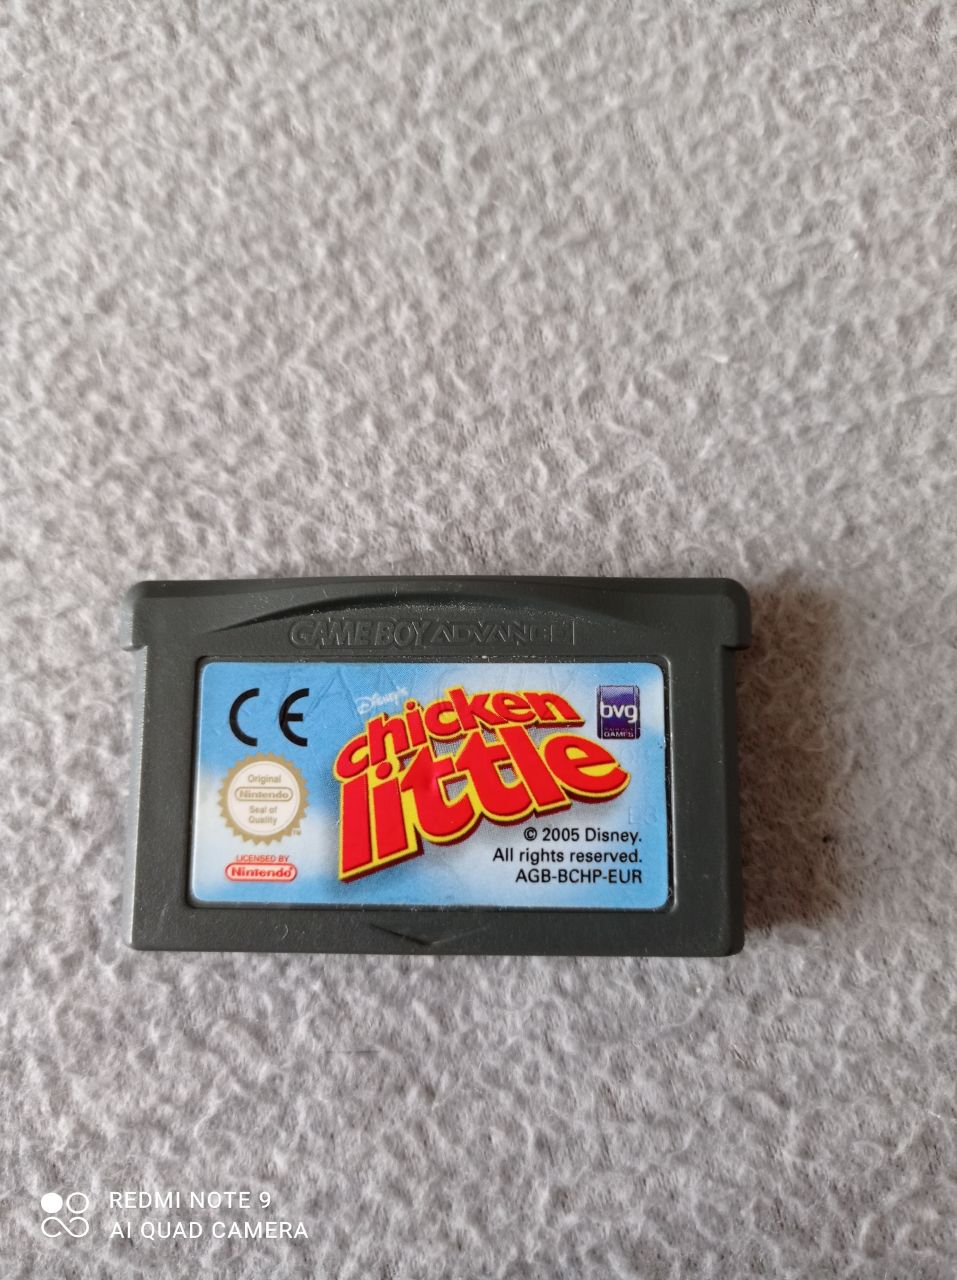 Image article Nintendo - Game boy advance - Chicken little